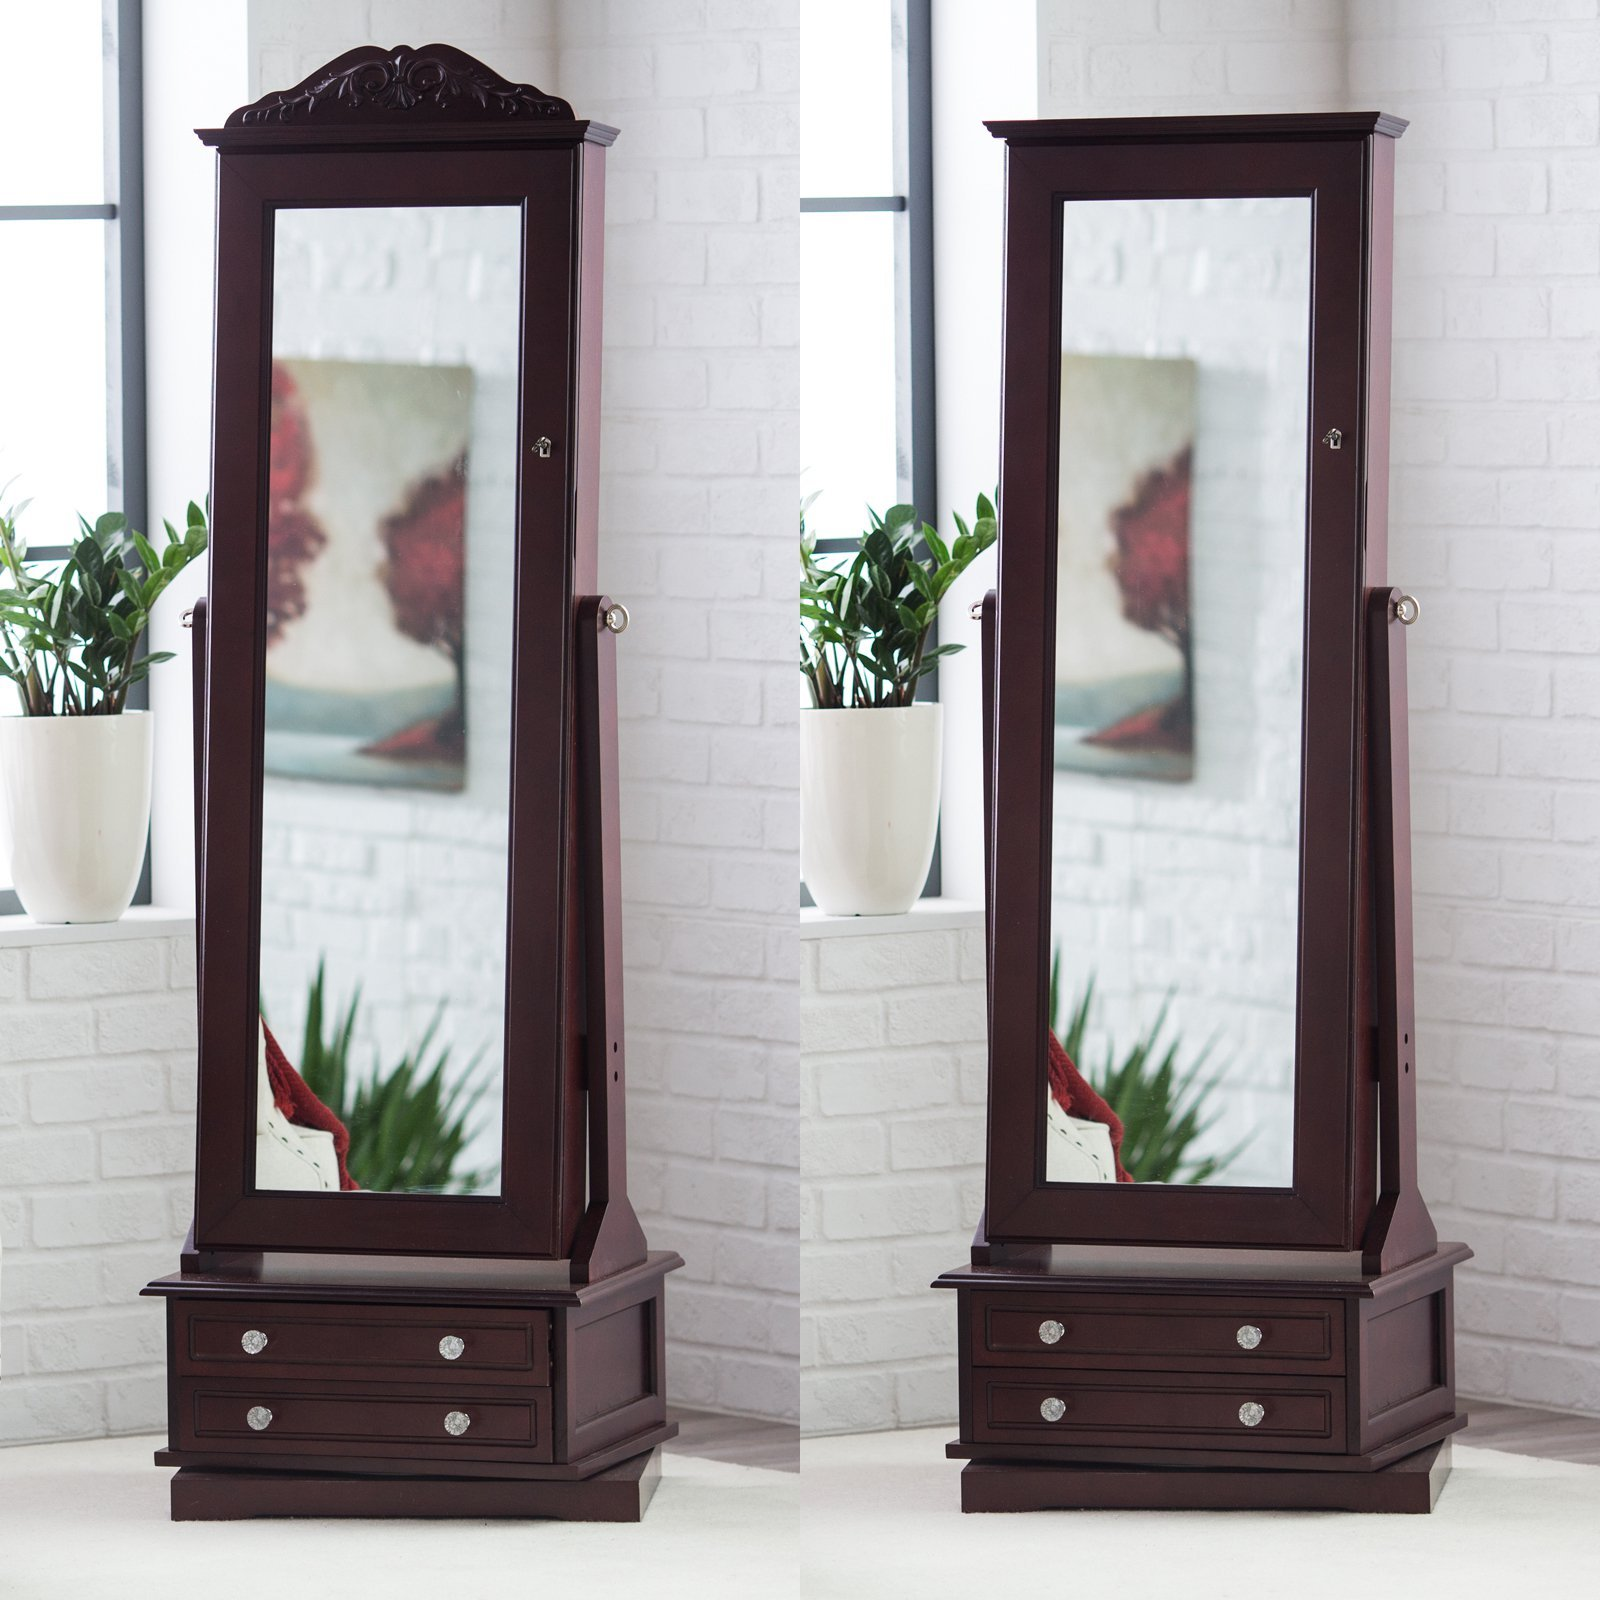 Cheval mirror jewelry armoire swivel floor standing for Armoire dressing but